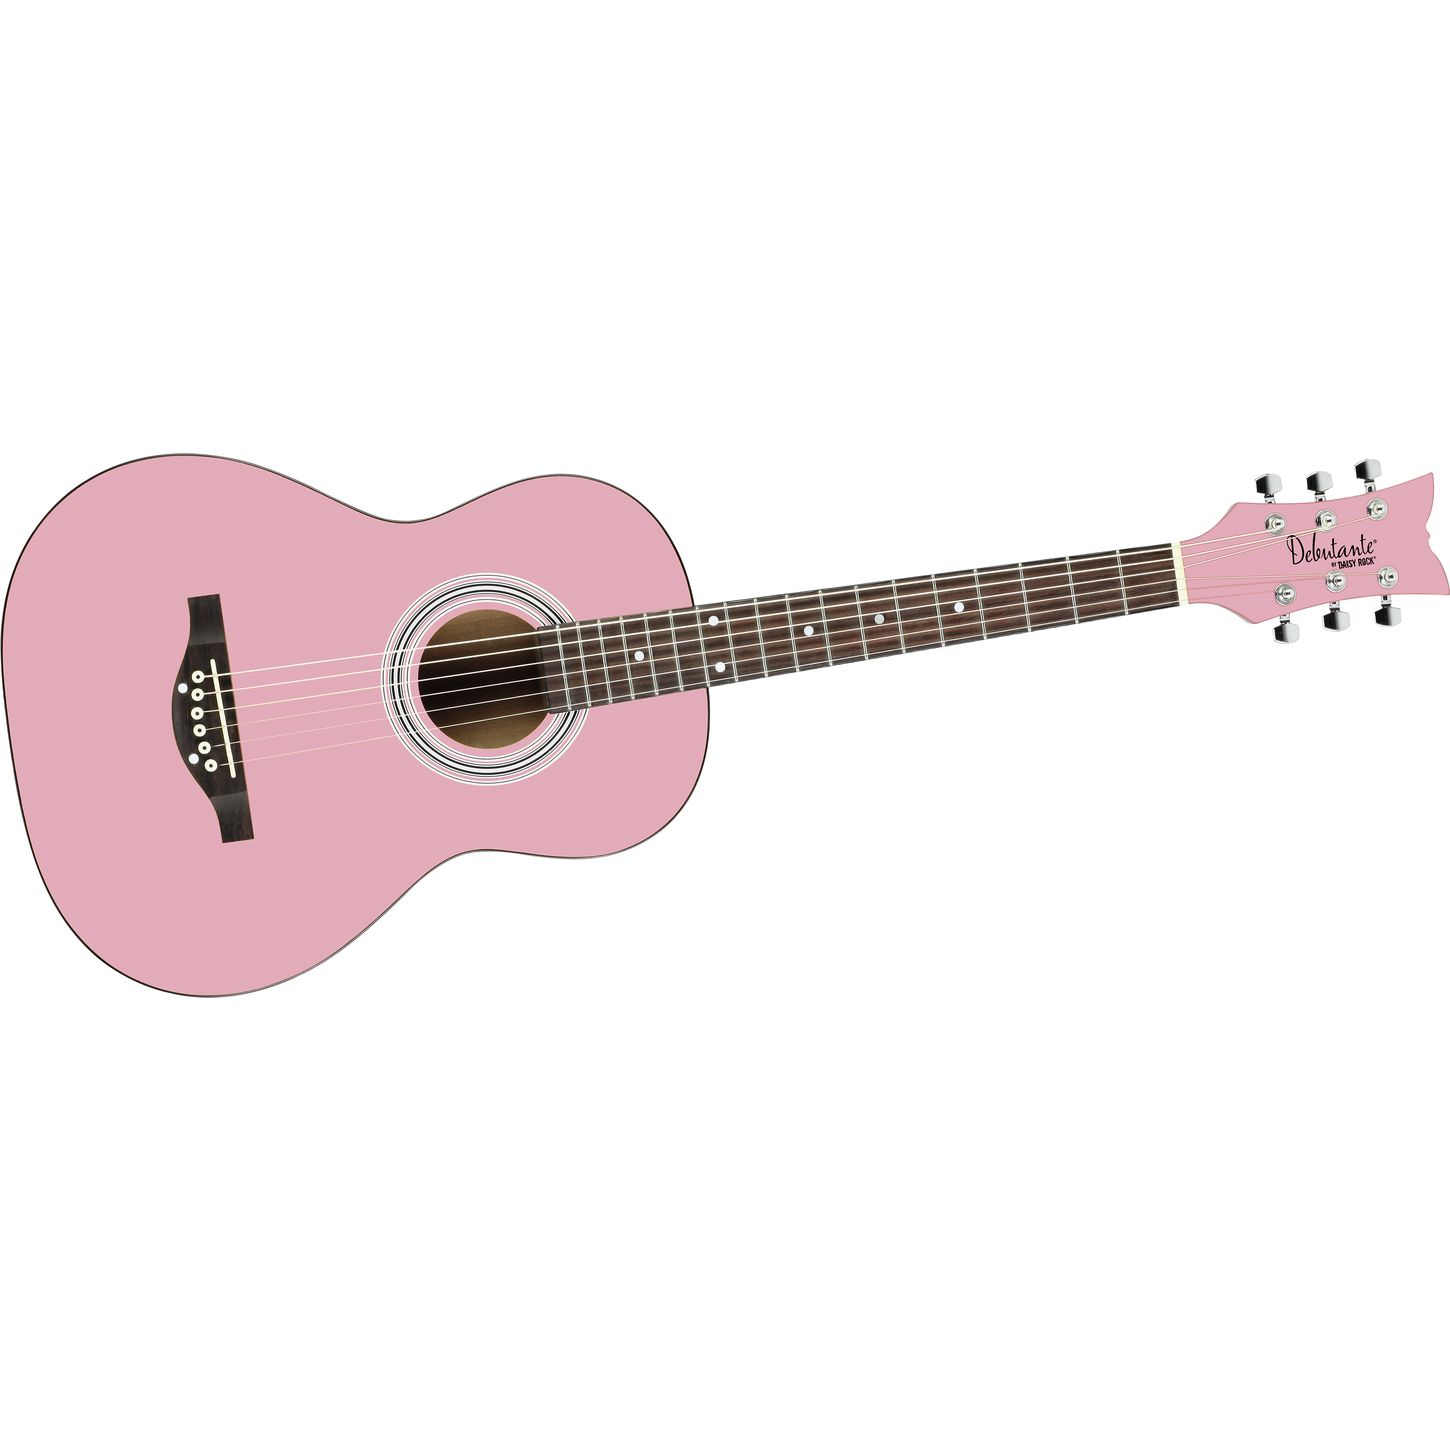 Pin Pink Guitar On Tumblr on Pinterest